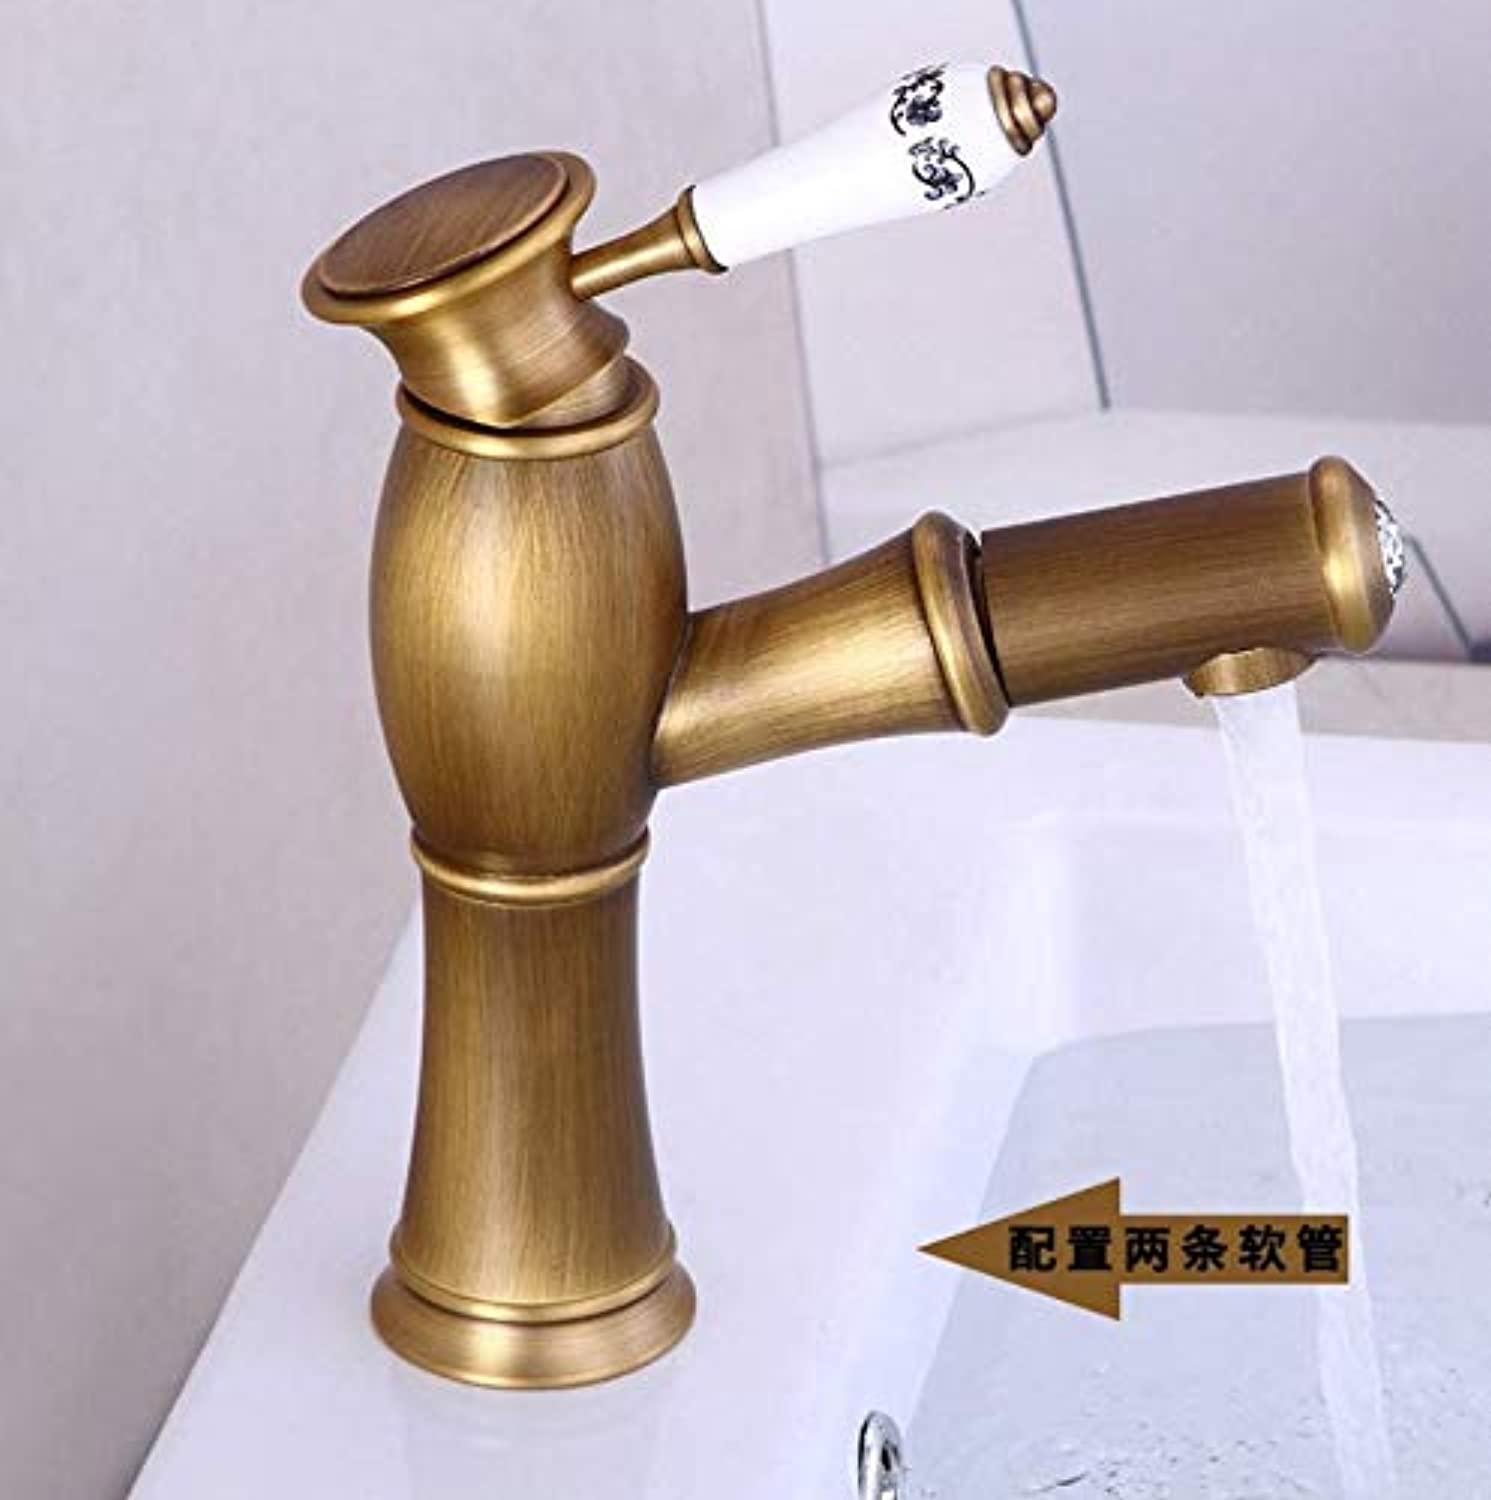 Dwthh Retro Antique Brass Bathroom Faucets Single Holder Single Hole Deck Mounted Faucet Hot Cold Water Mixer Tap